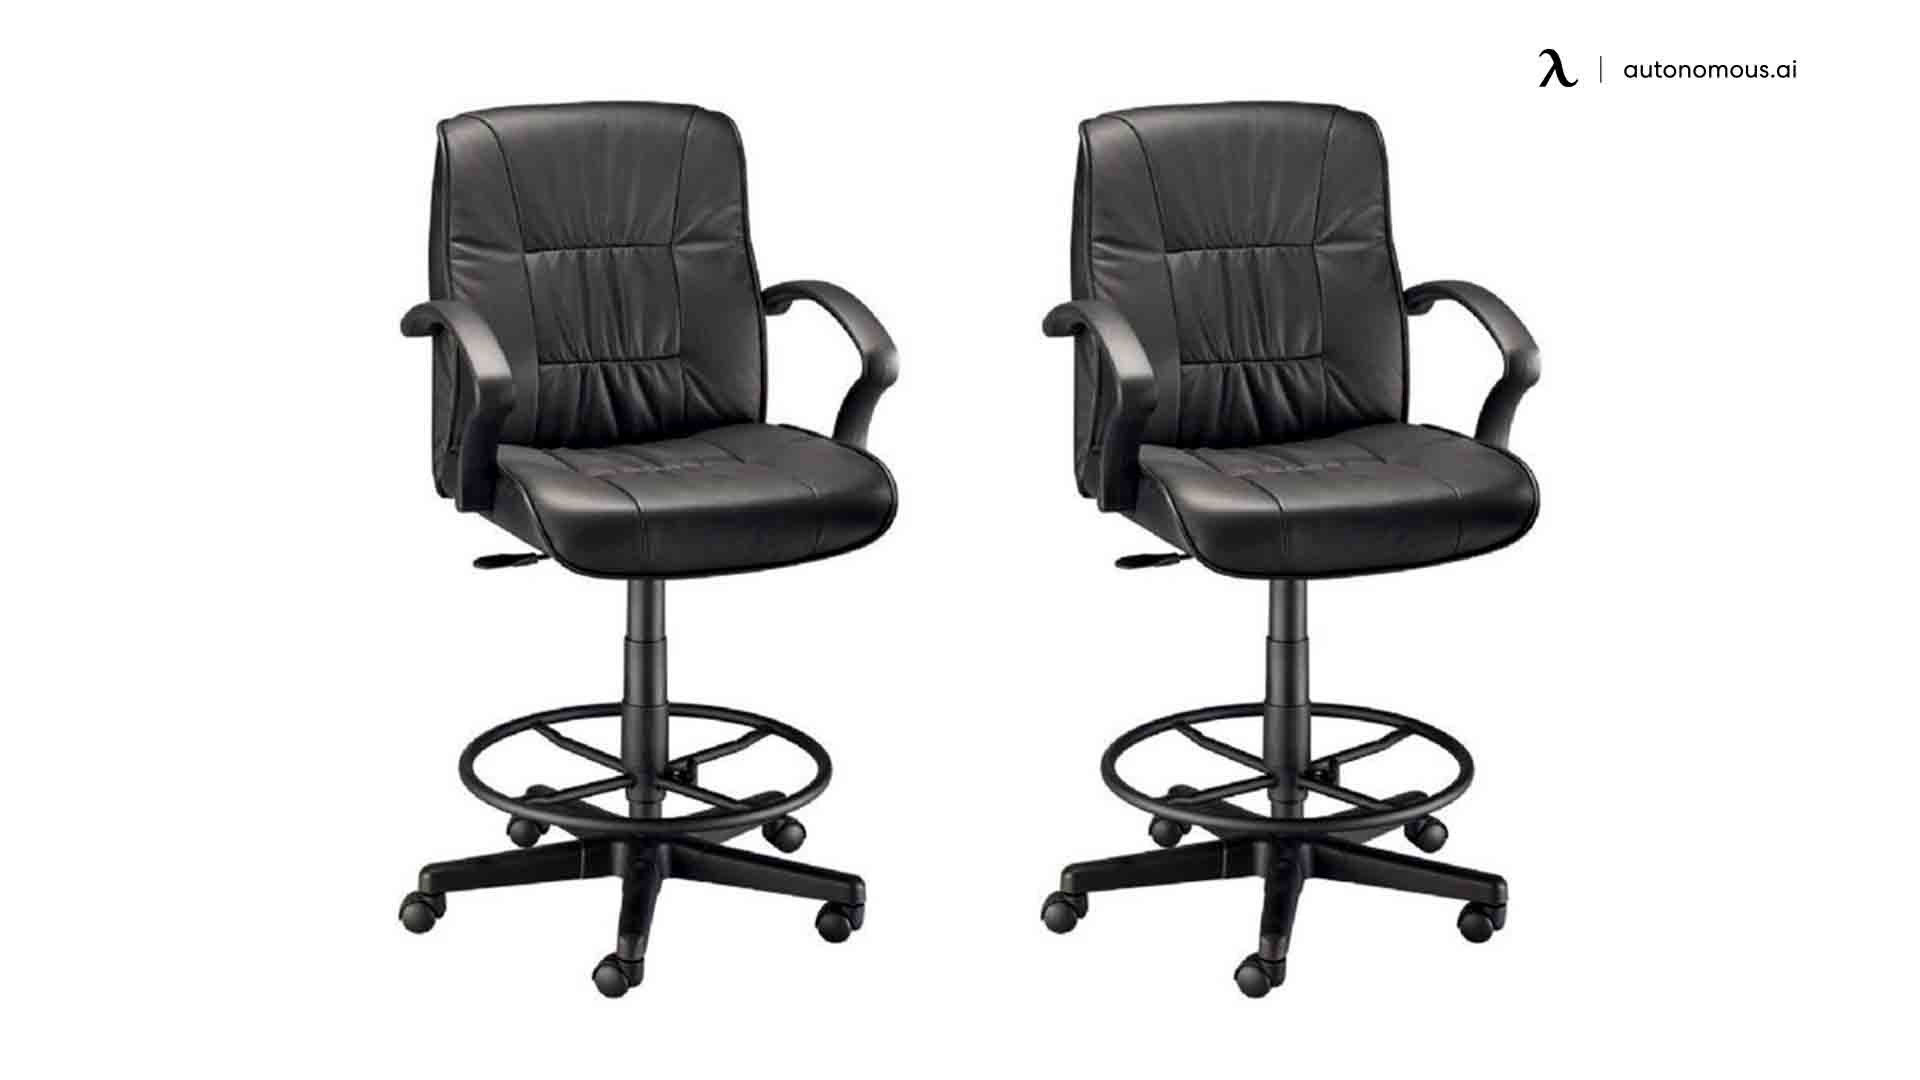 Alvin 90DH Leather Drafting Chair